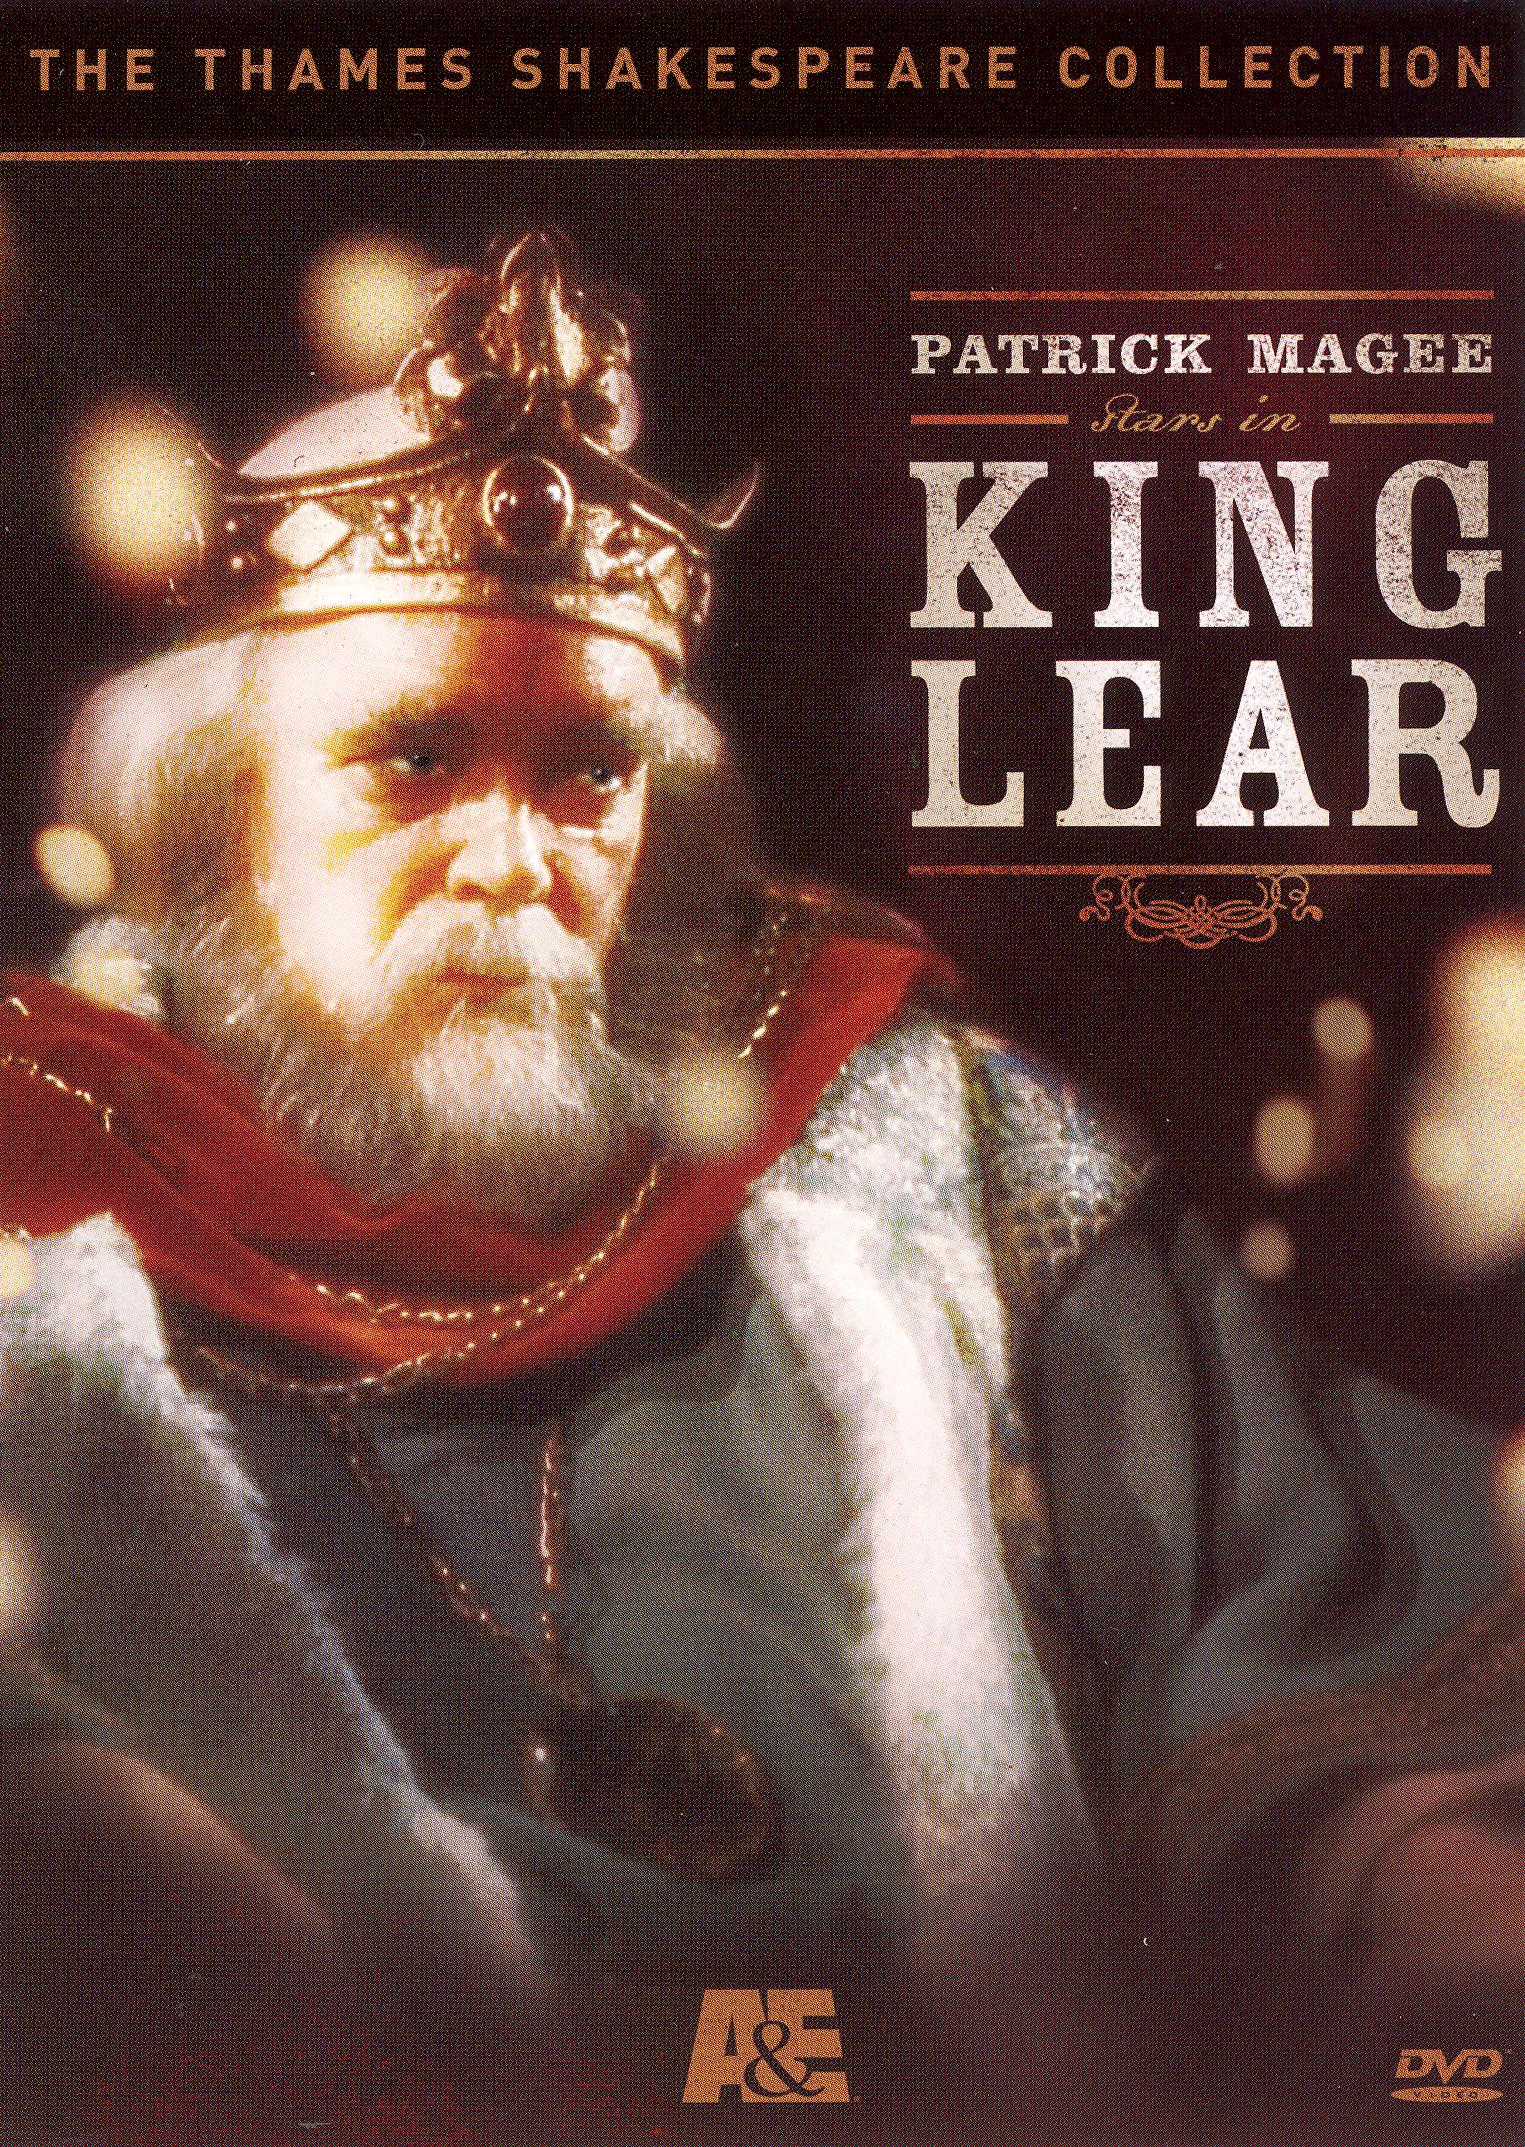 an examination of family in shakespeares play king lear Whilst there are many different ways of reading shakespeare's king lear  to a family reading of the play,  of the play: a pitiless examination of the cruelty.